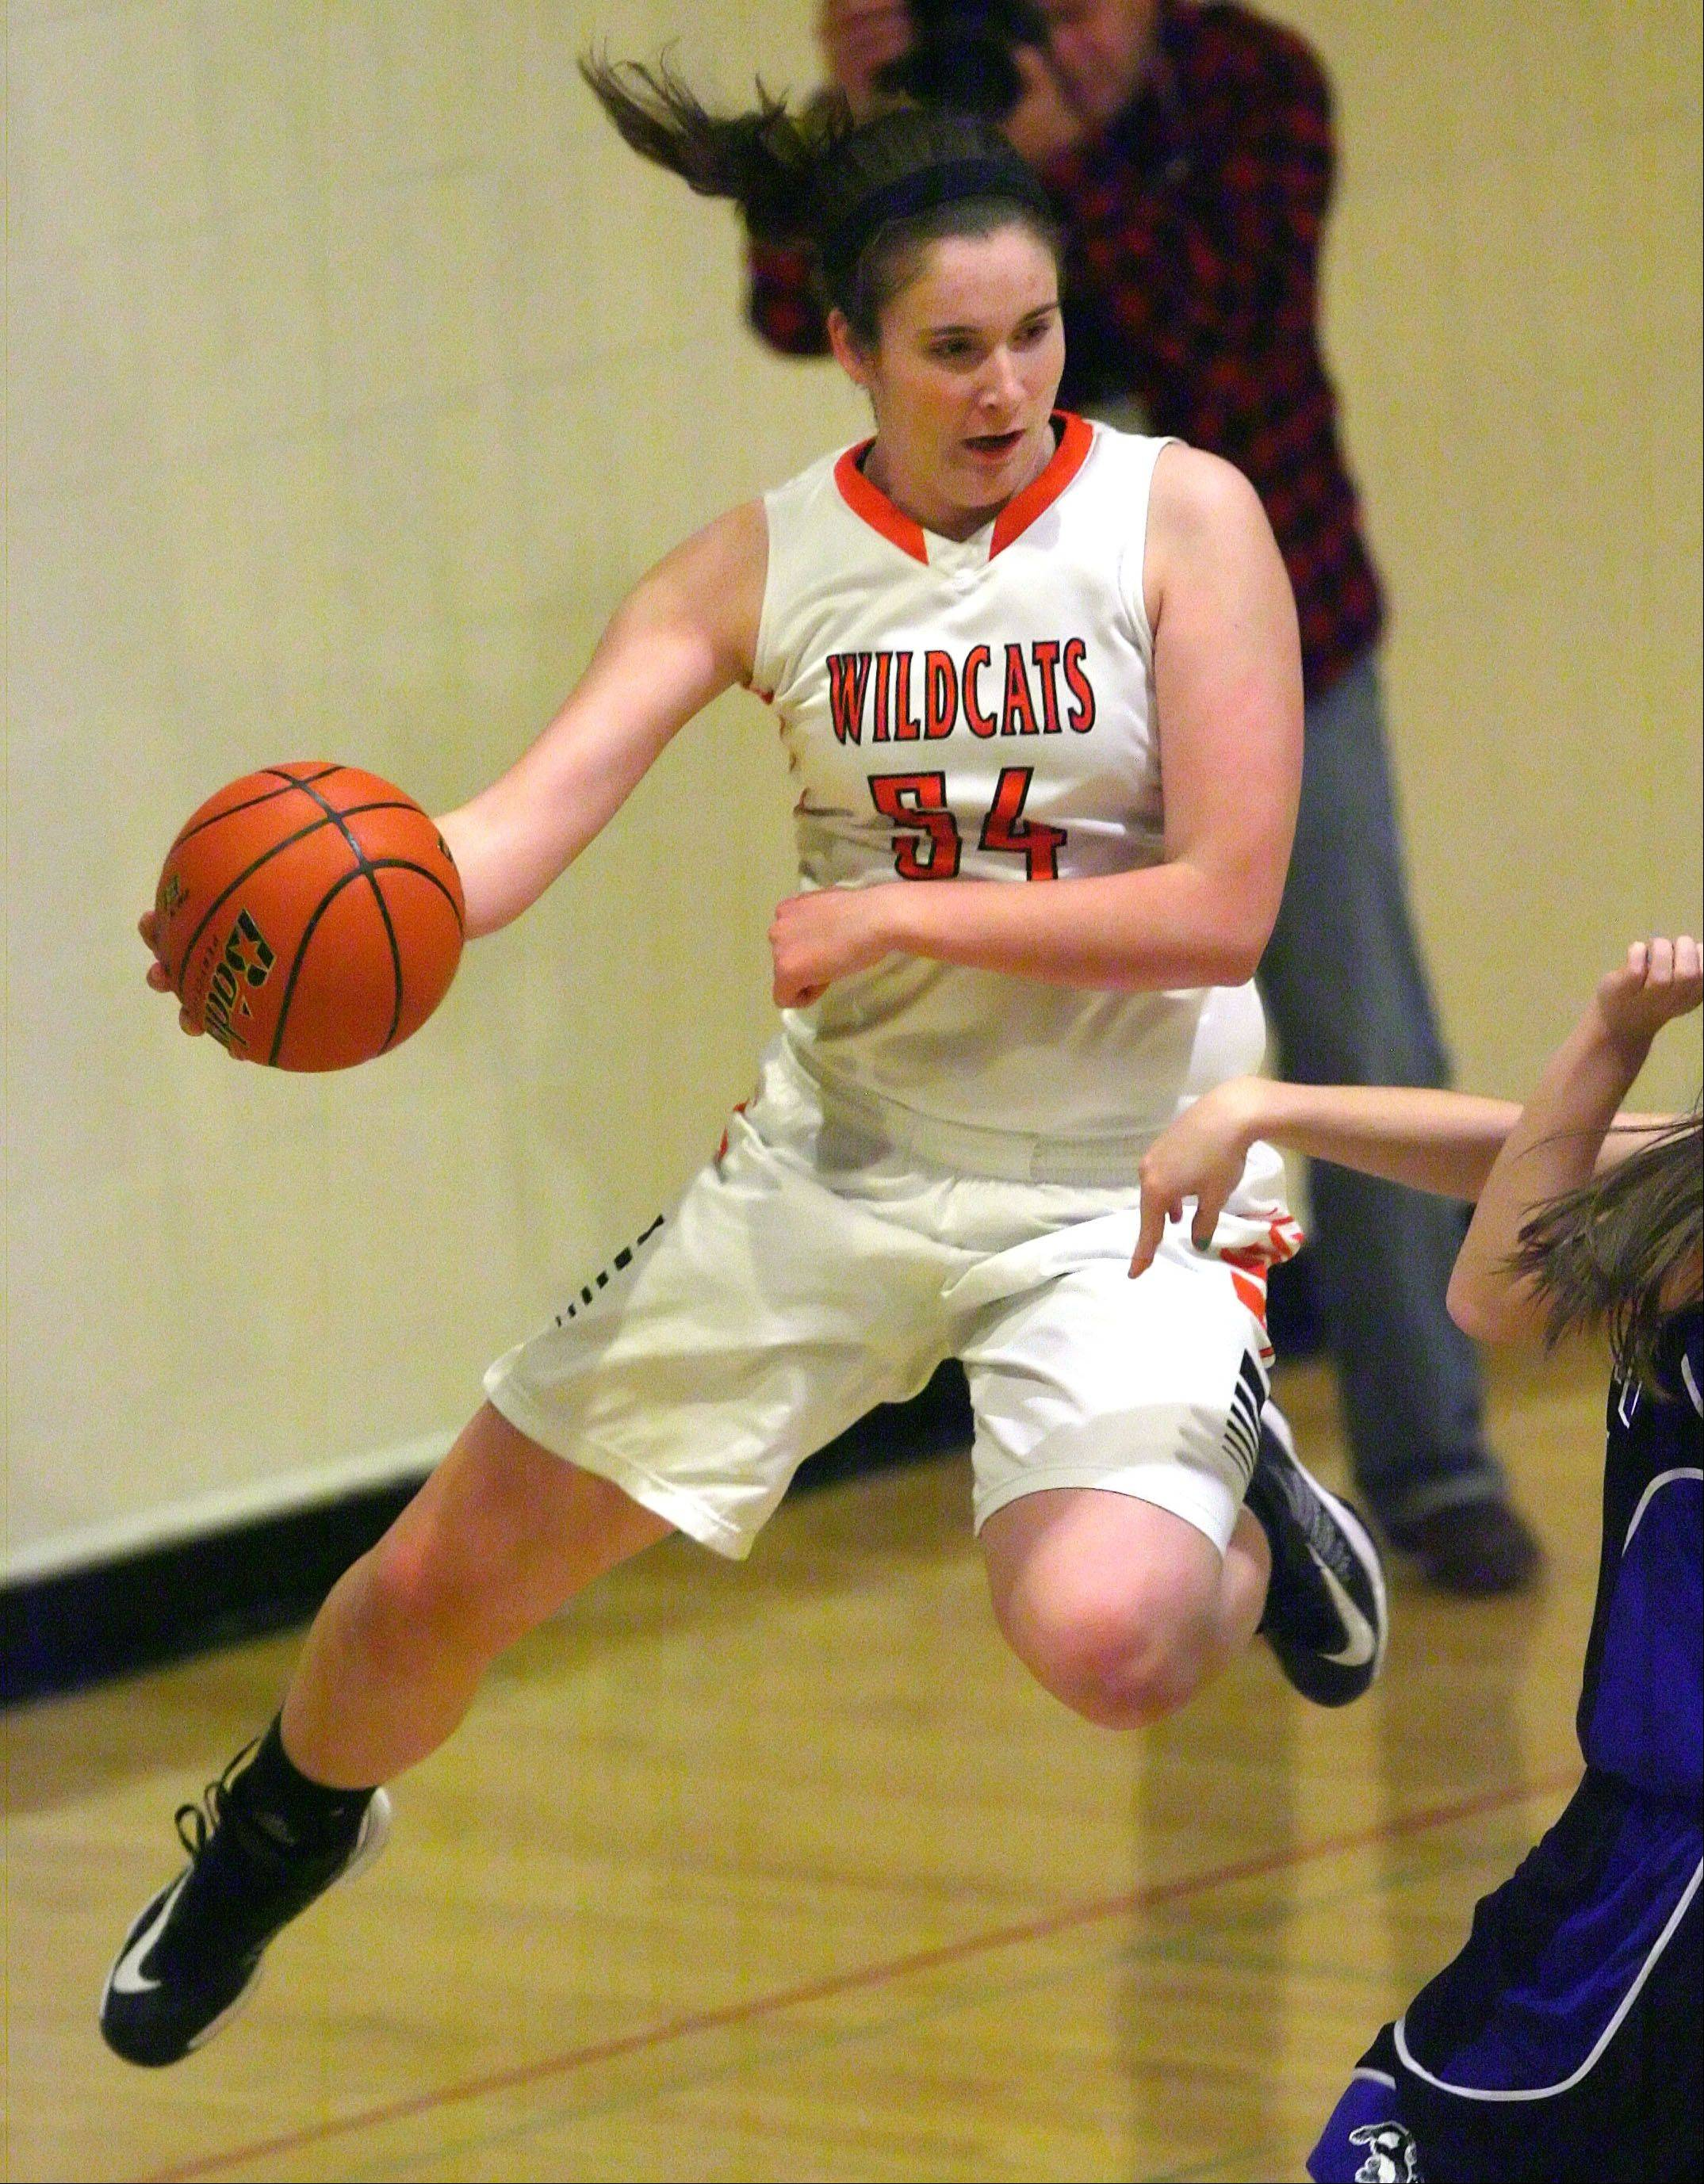 Libertyville's Becky Deichl saves the ball from going out of bounds .